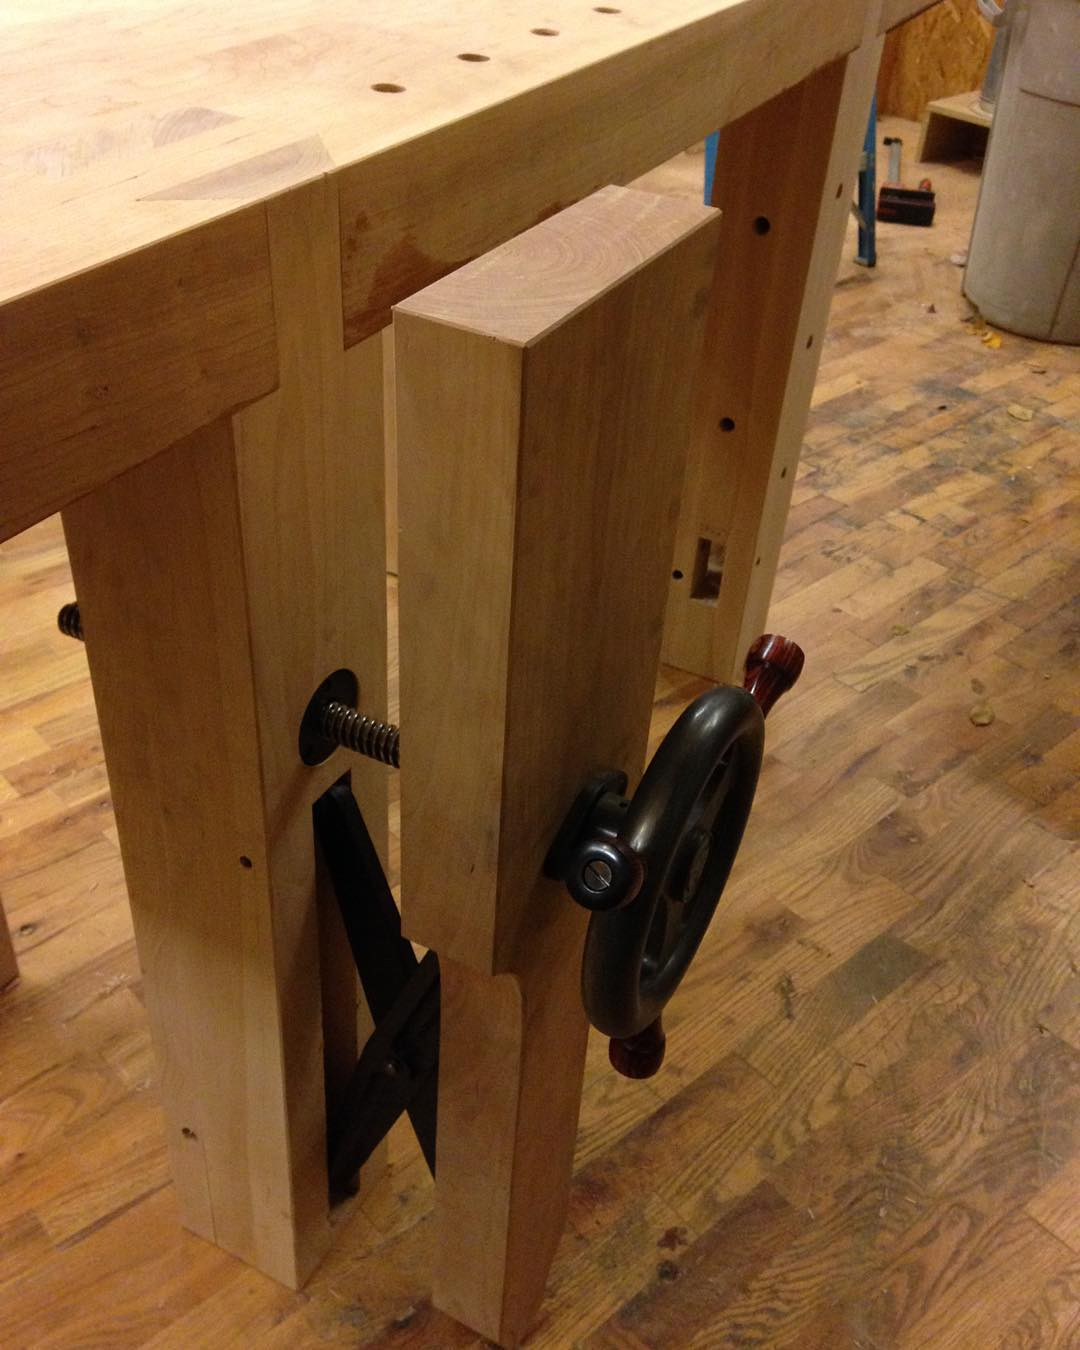 I started oiling the top of the cherry Roubo workbench tonight but forgot to take a picture. Here's a glamour shot of the leg vise in the meantime…  #condortails #madeinusa #madeinmichigan #Benchcrafted #woodshop #workshop  #woodwork  #handmade #cherry #beech  #workbench #roubo #tenon #dovetail #legvise #wagonwheel #woodworking #mcmfurniture #lienielsen #whiteoak  http://ift.tt/1M0msyo